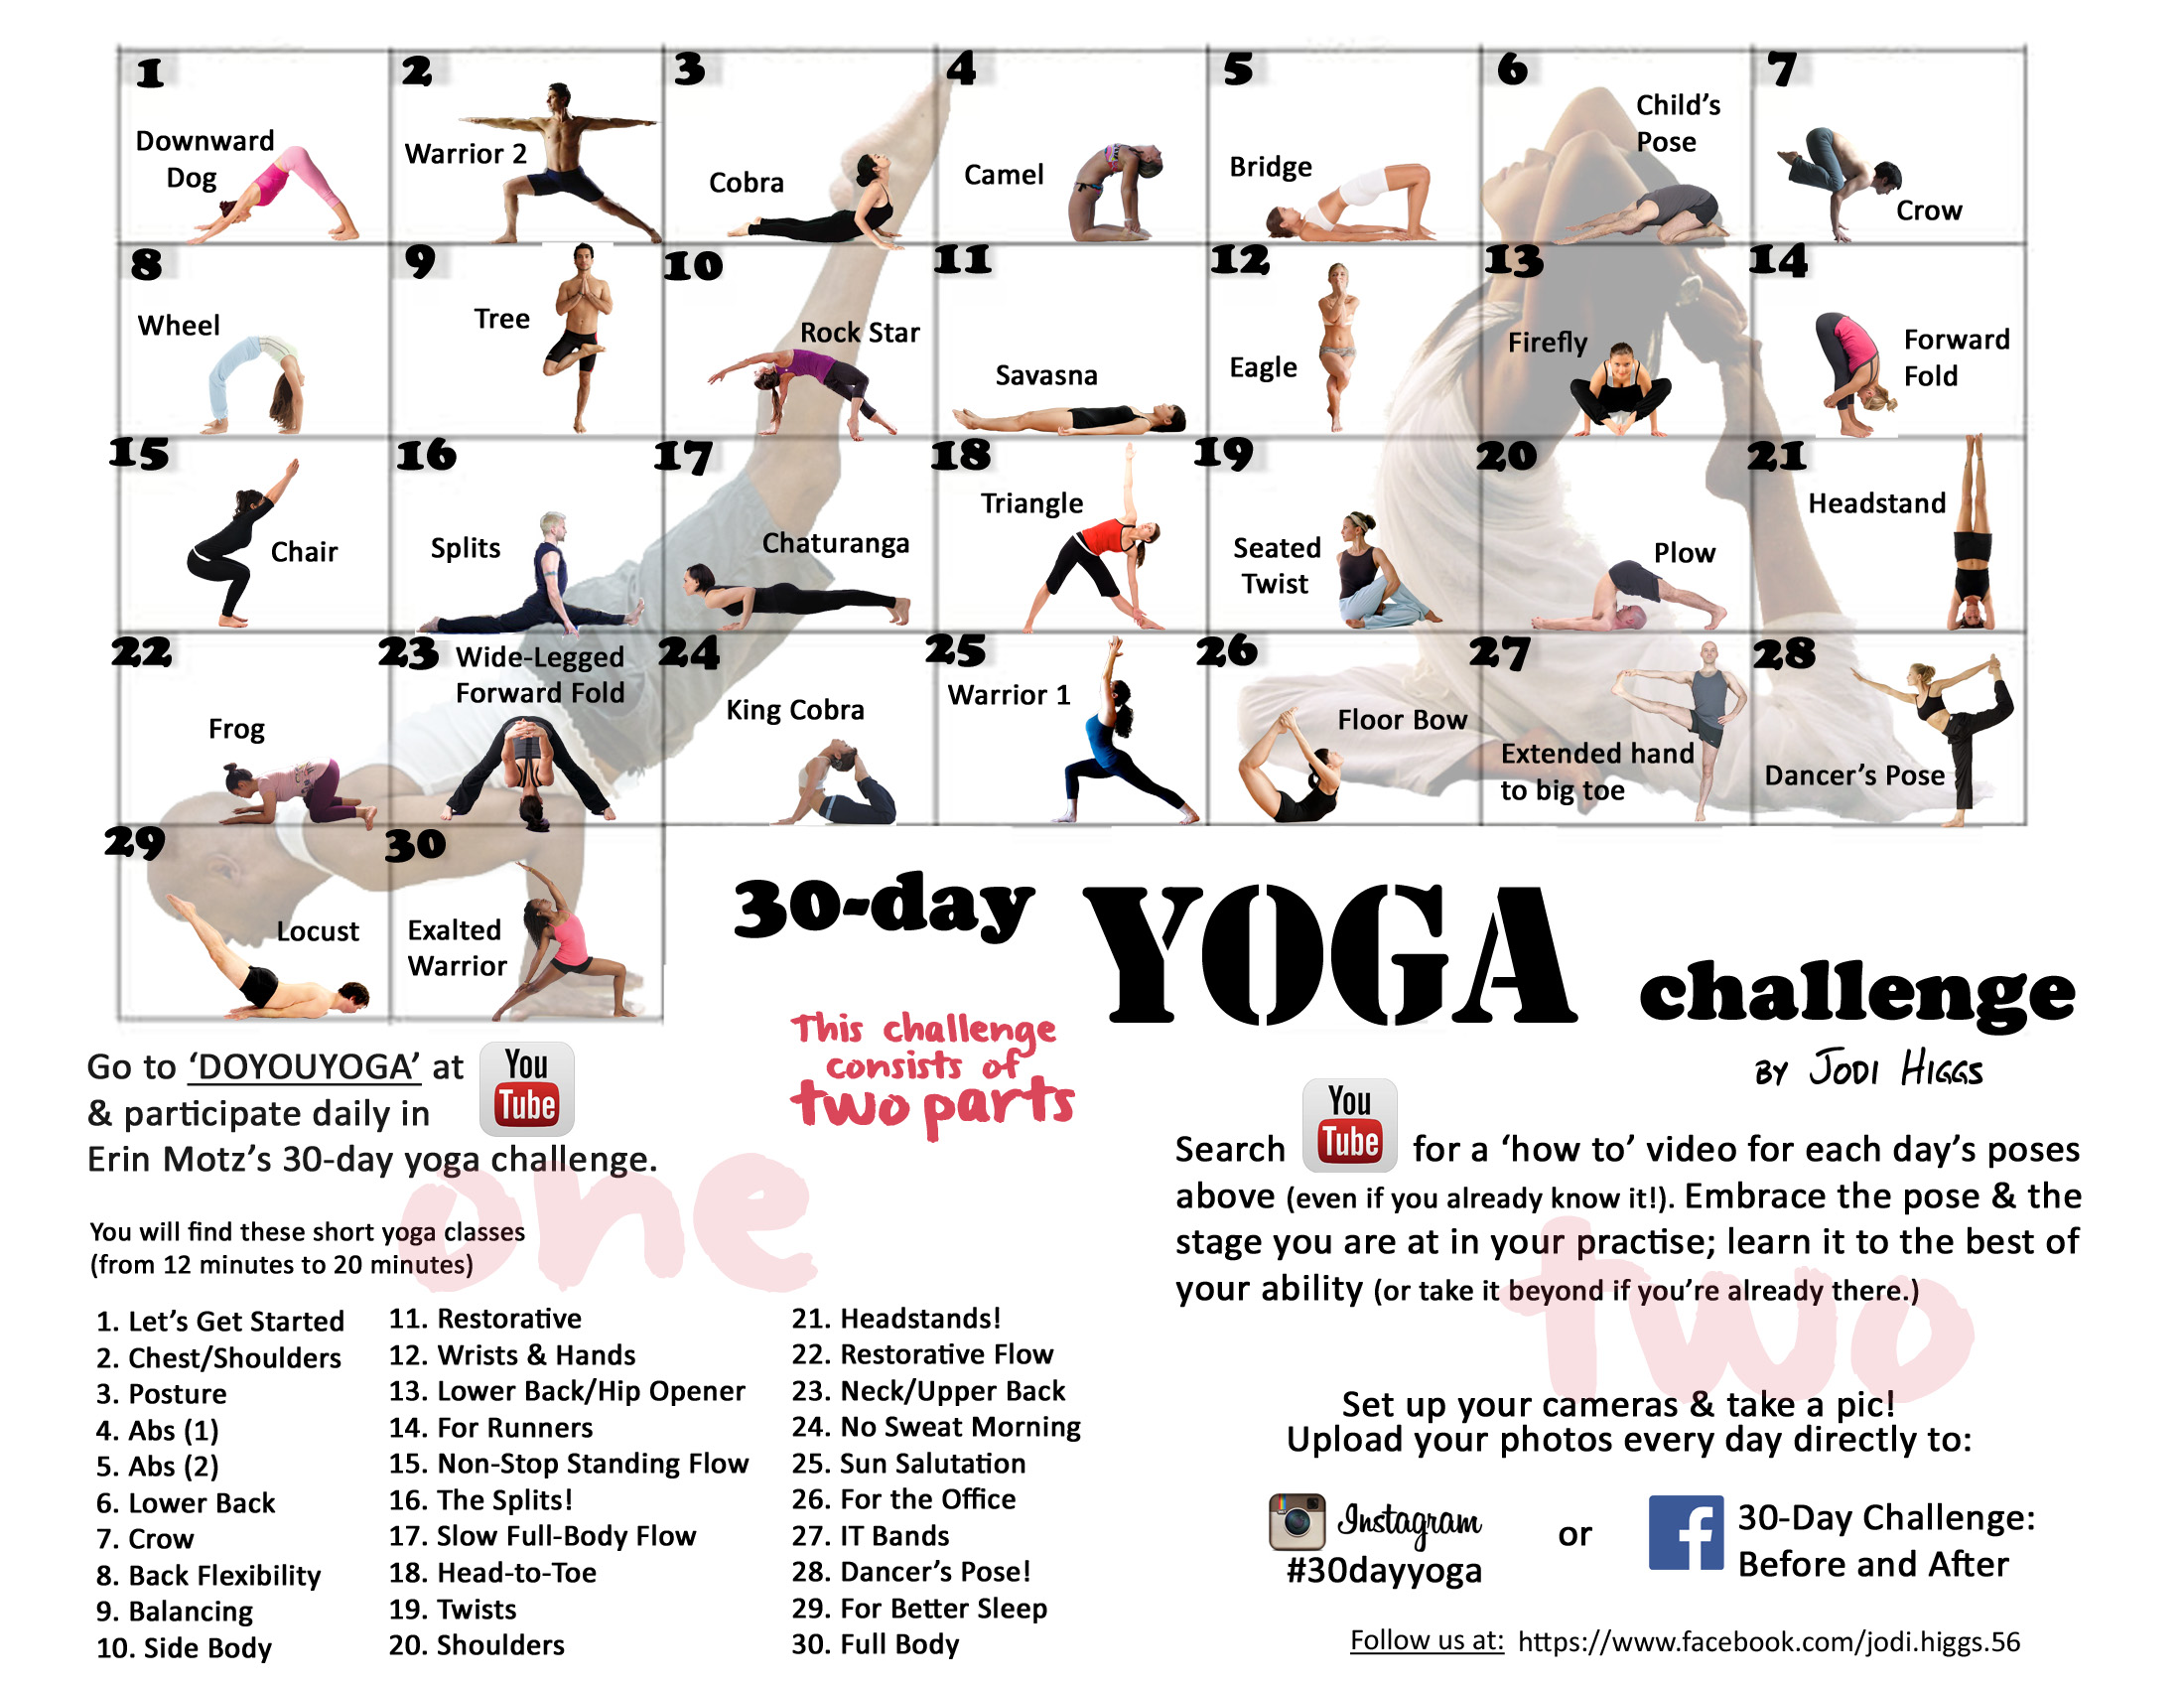 17 Best ideas about 30 Day Back Challenge on Pinterest.